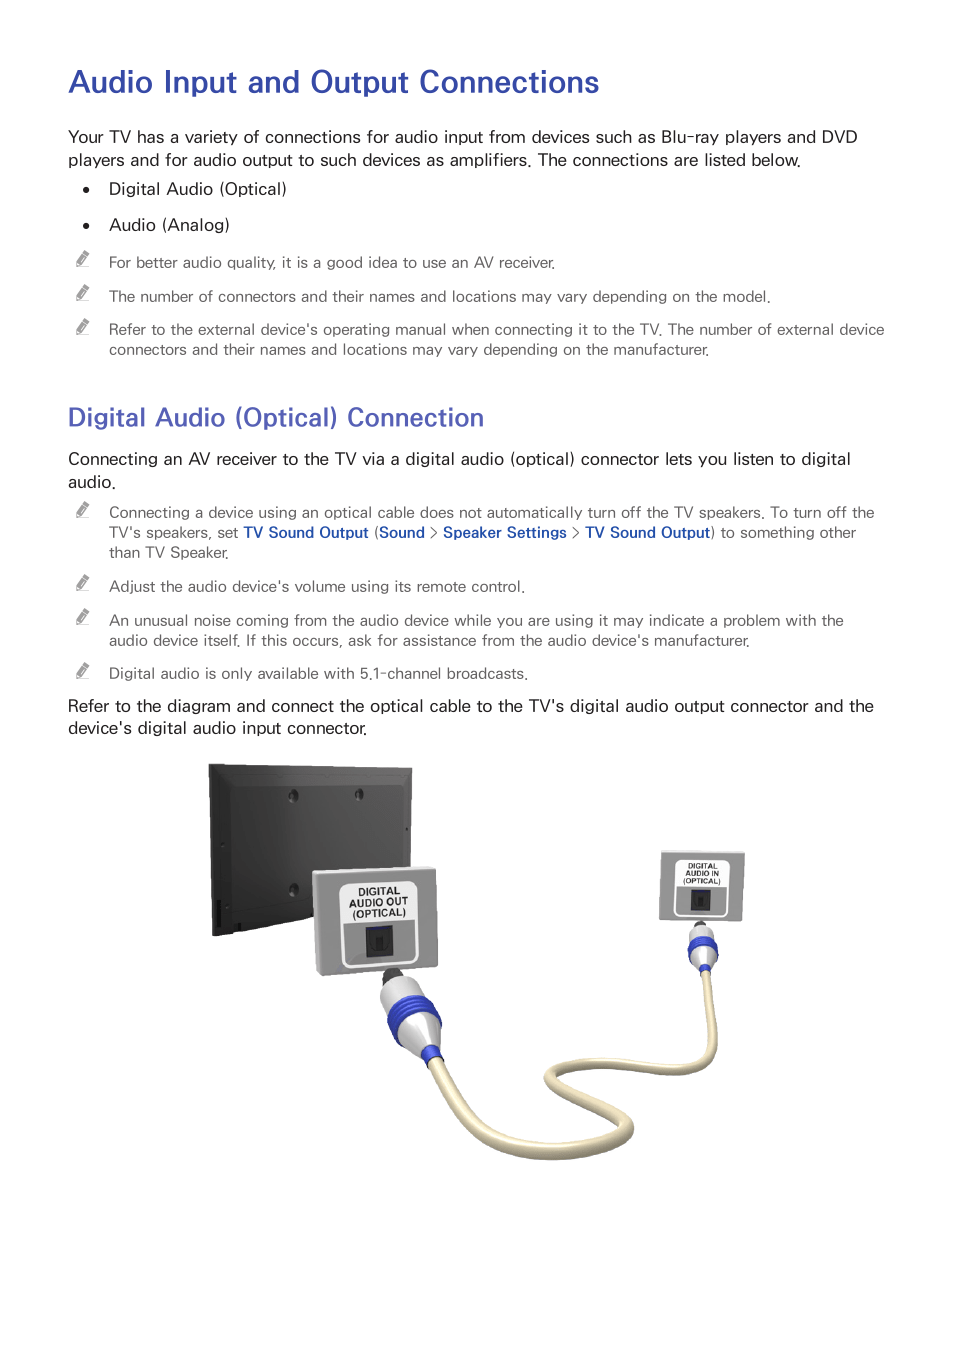 medium resolution of audio input and output connections digital audio optical connection samsung un24h4500afxza user manual page 10 146